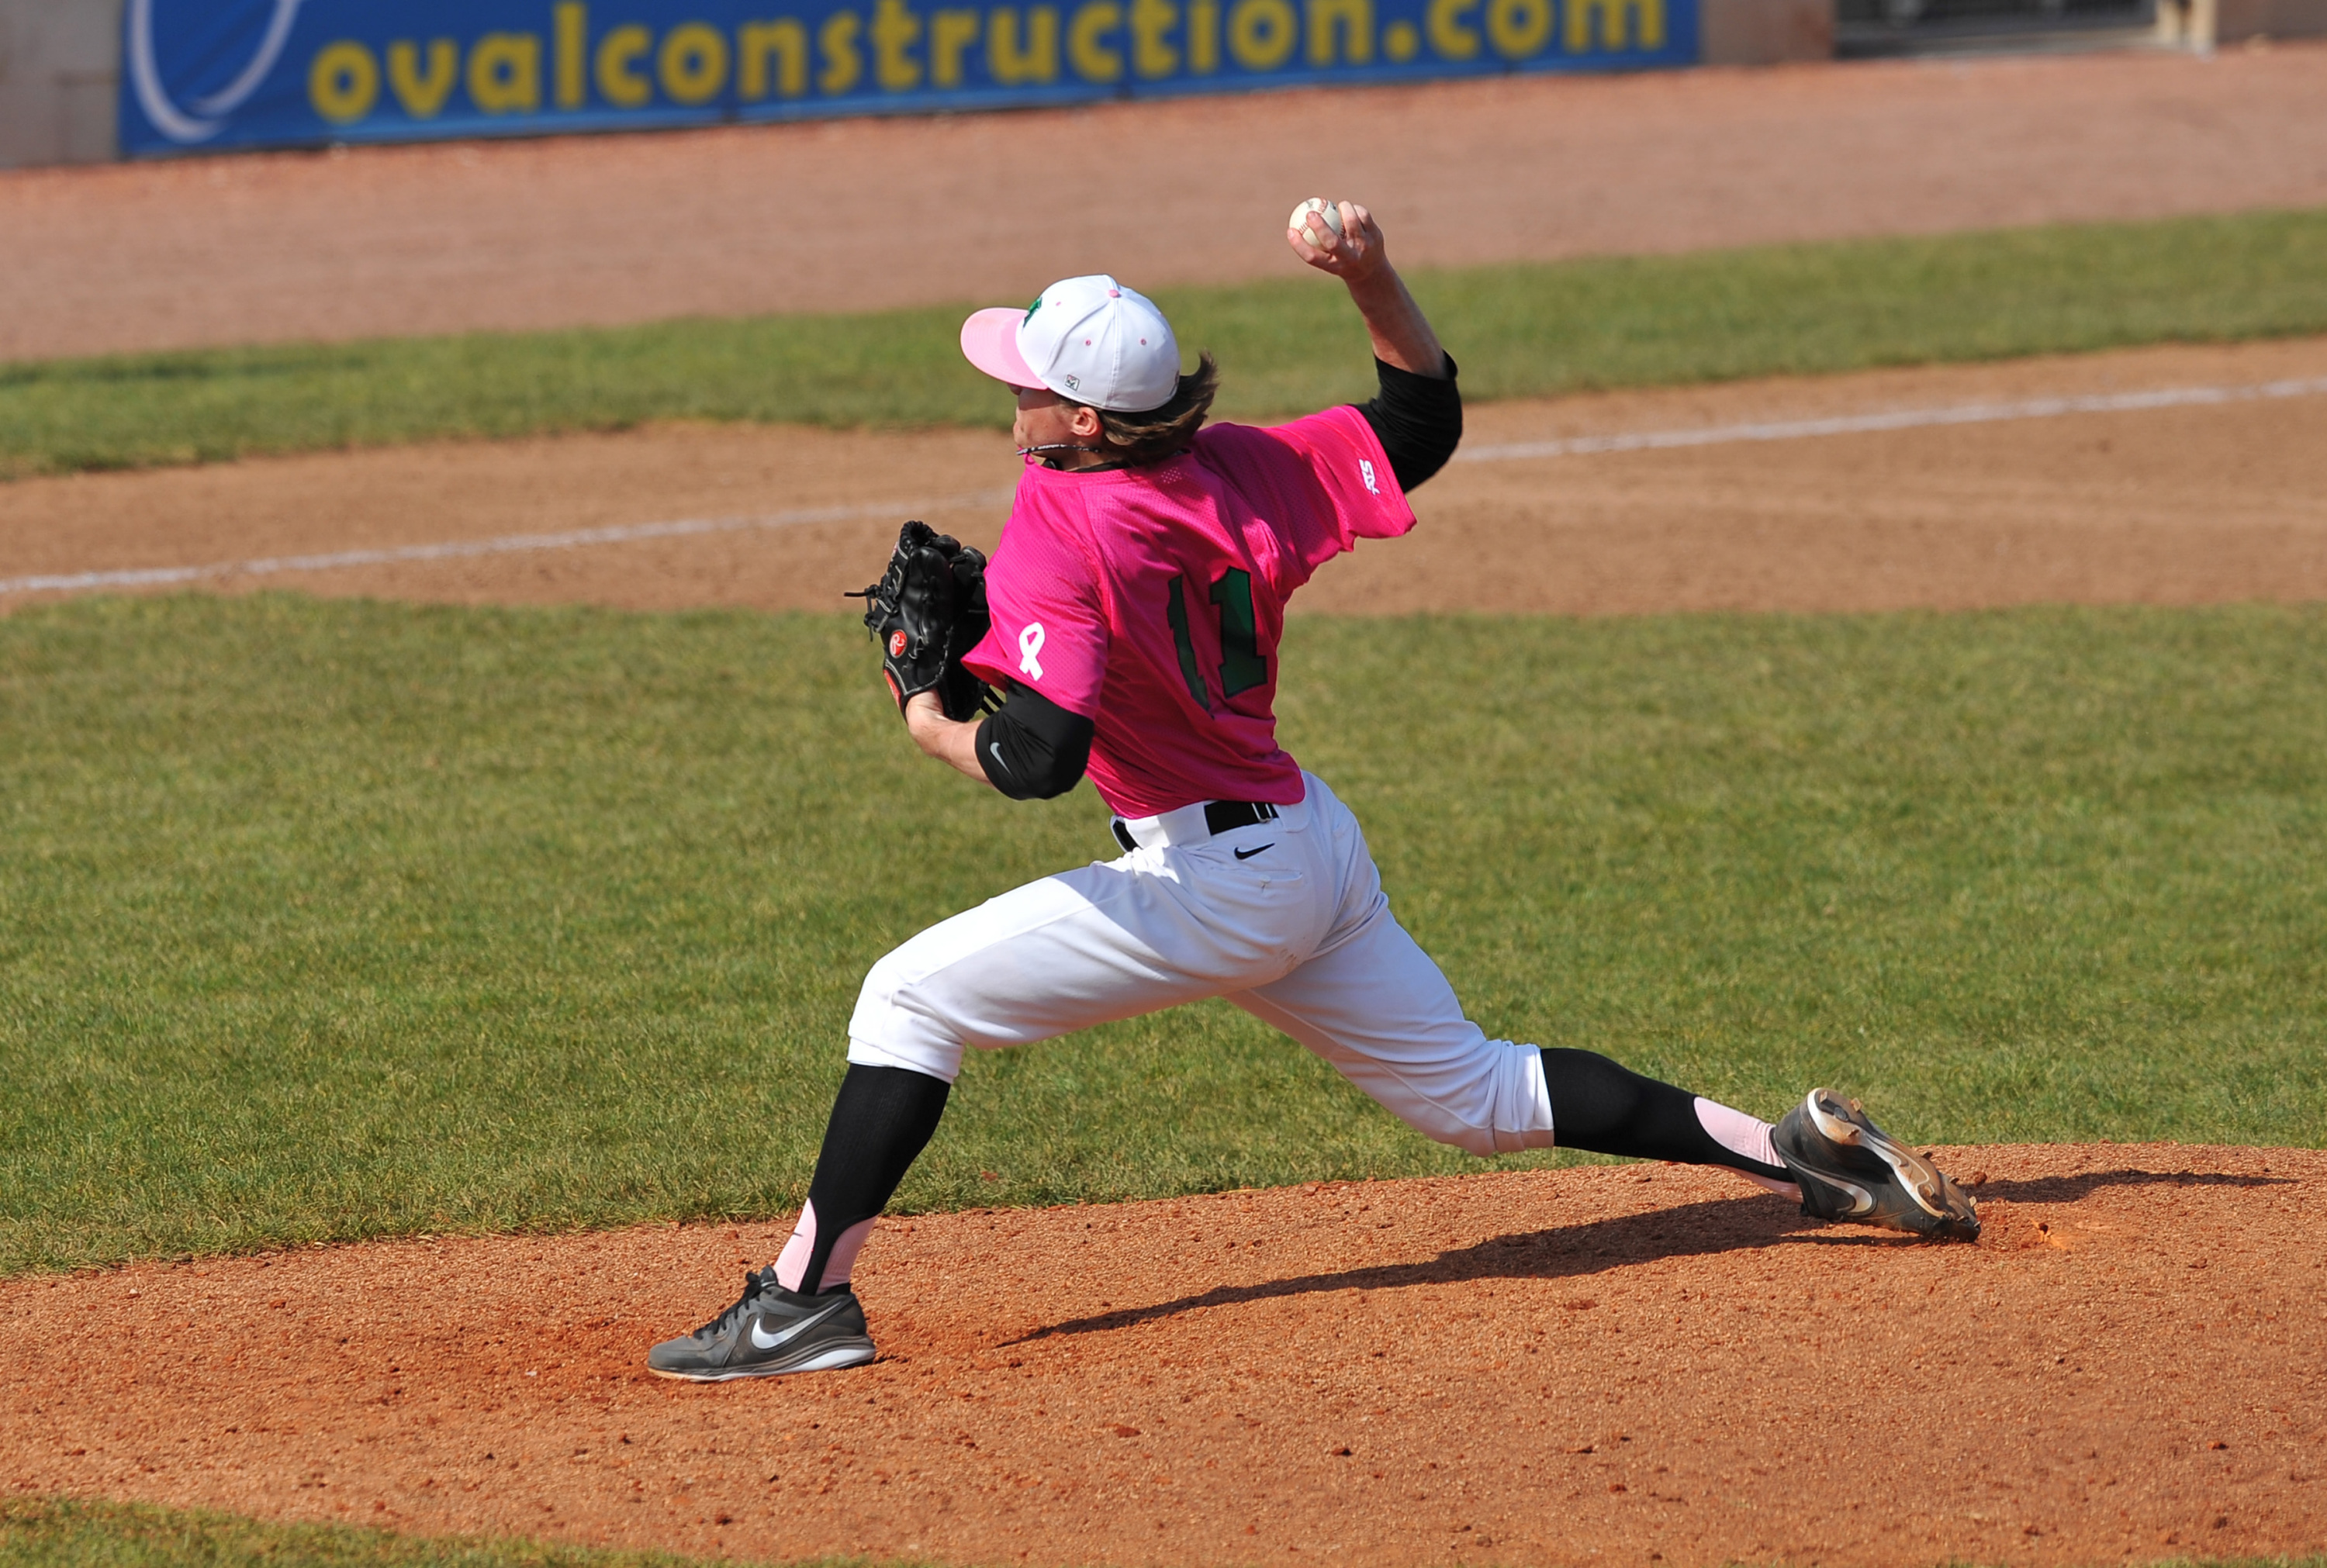 Senior Josh King in the special Breast Cancer Awareness jerseys